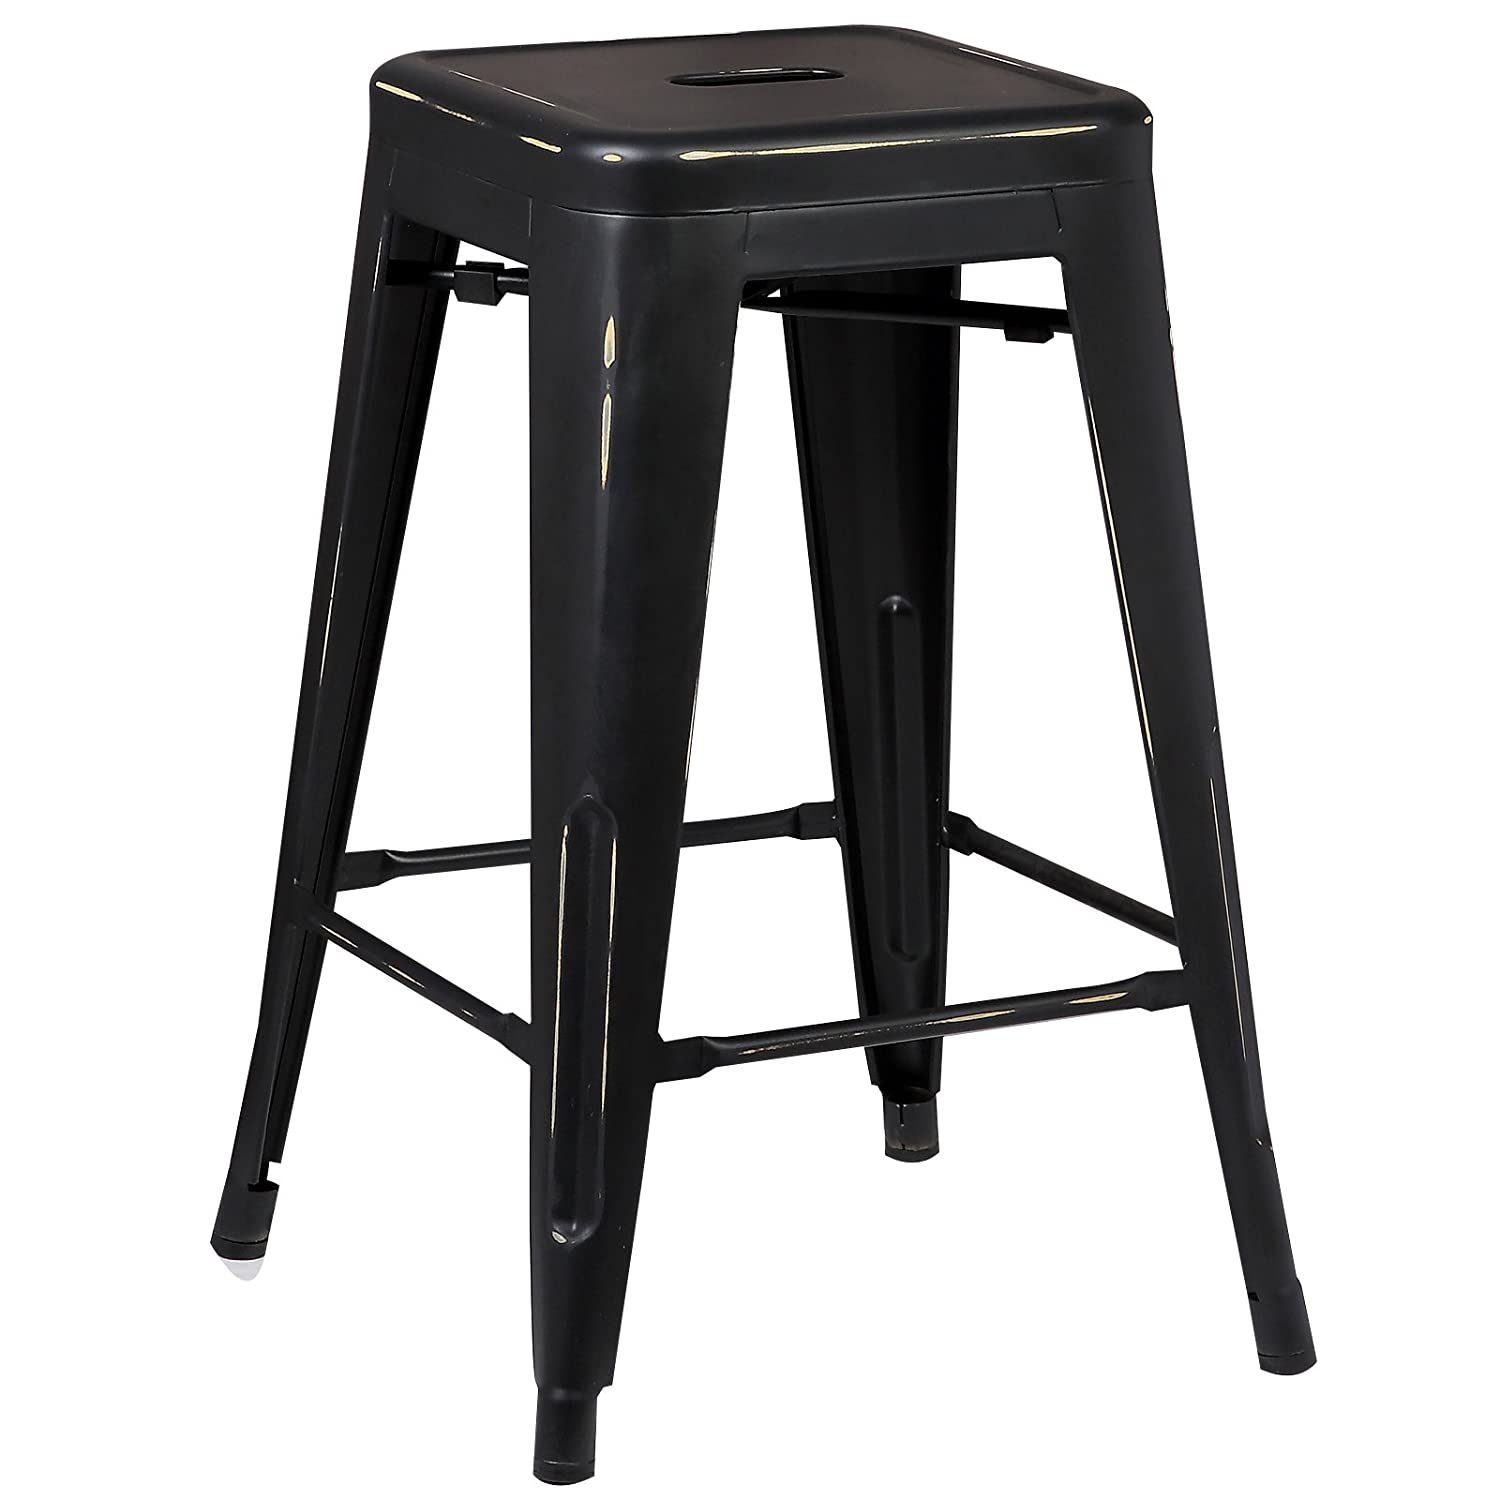 Poly and Bark Trattoria 24 Counter Height Industrial Metal Bar Stool, Stackable, Distressed Black